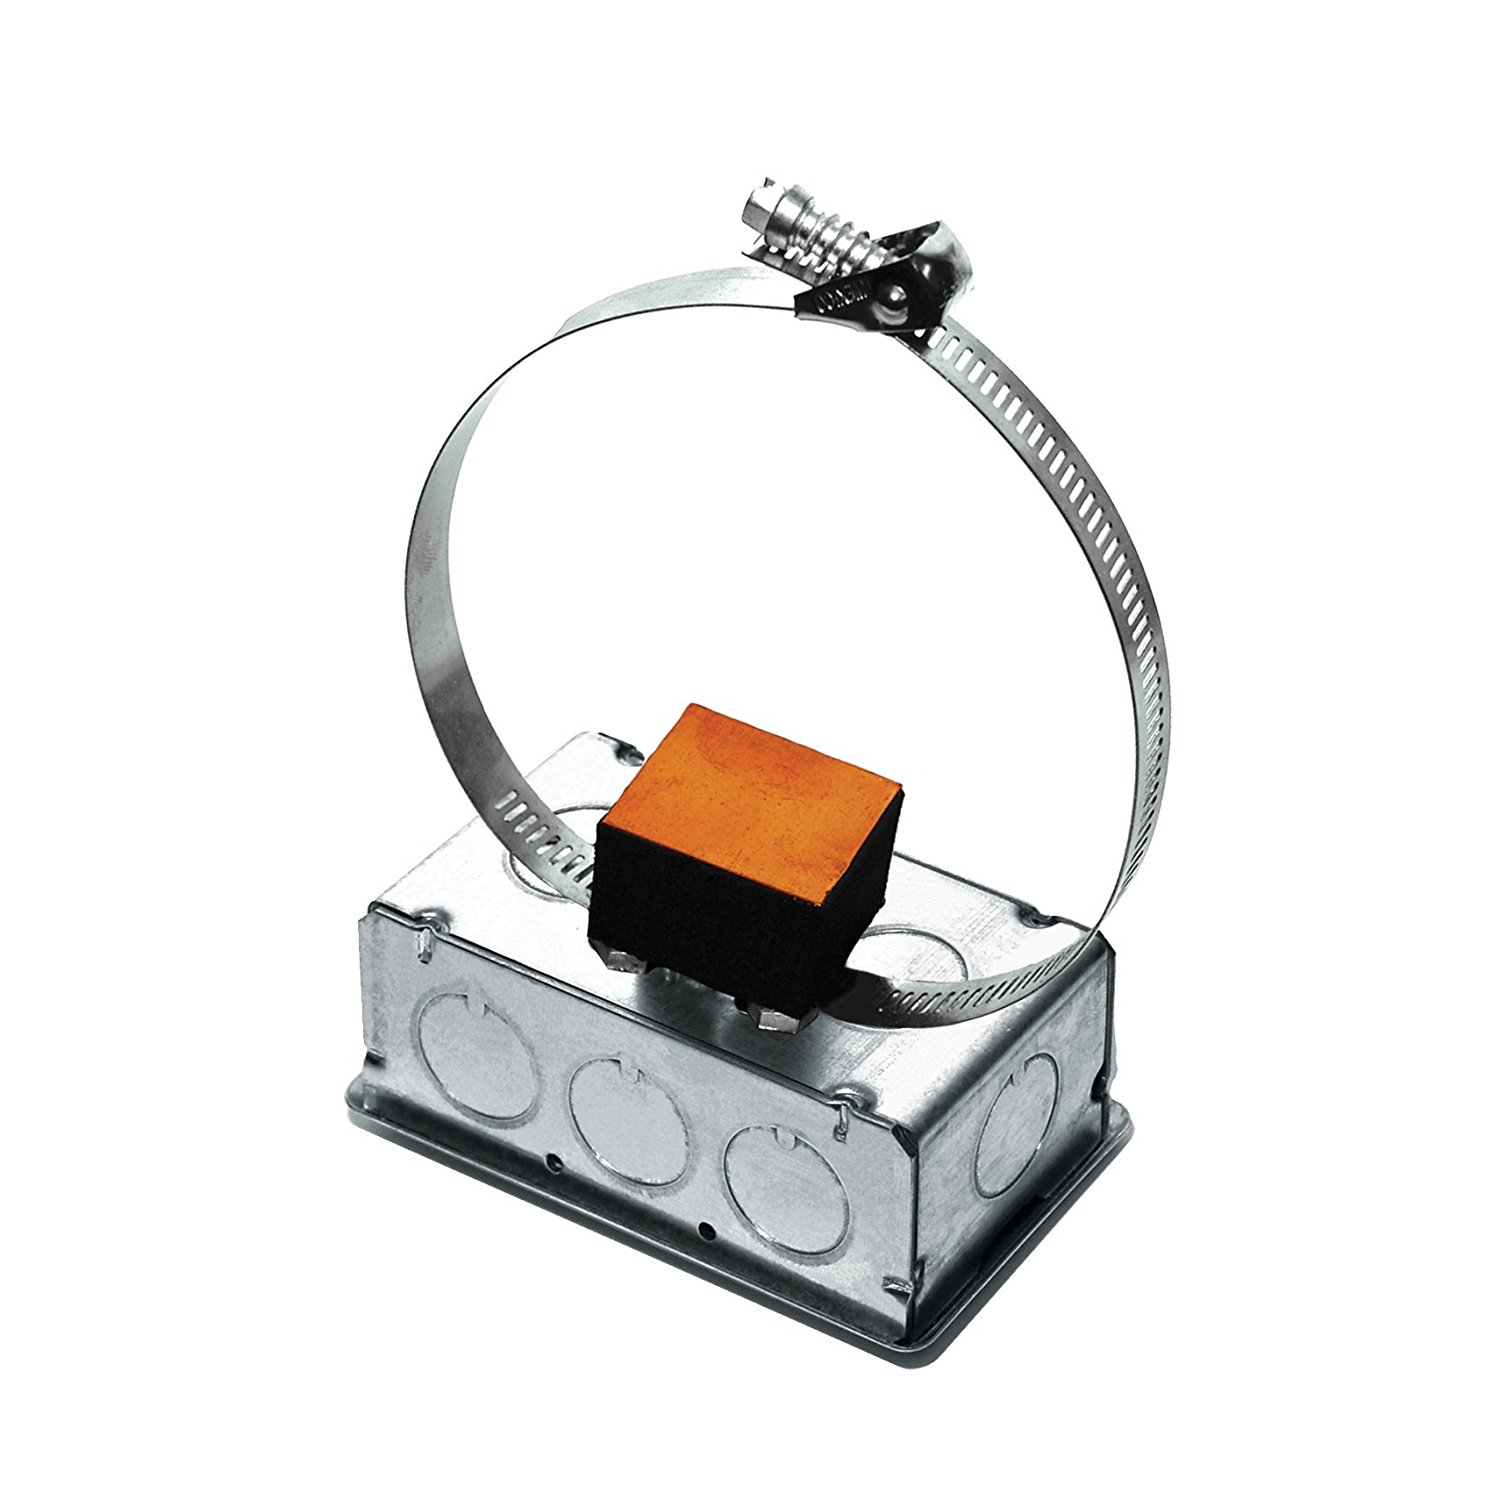 A/20K-S-GD | ACI | 20K ohm | Metal Strap On Pipe Tube Temperature Sensor | Galvanized Housing Enclosure Box |